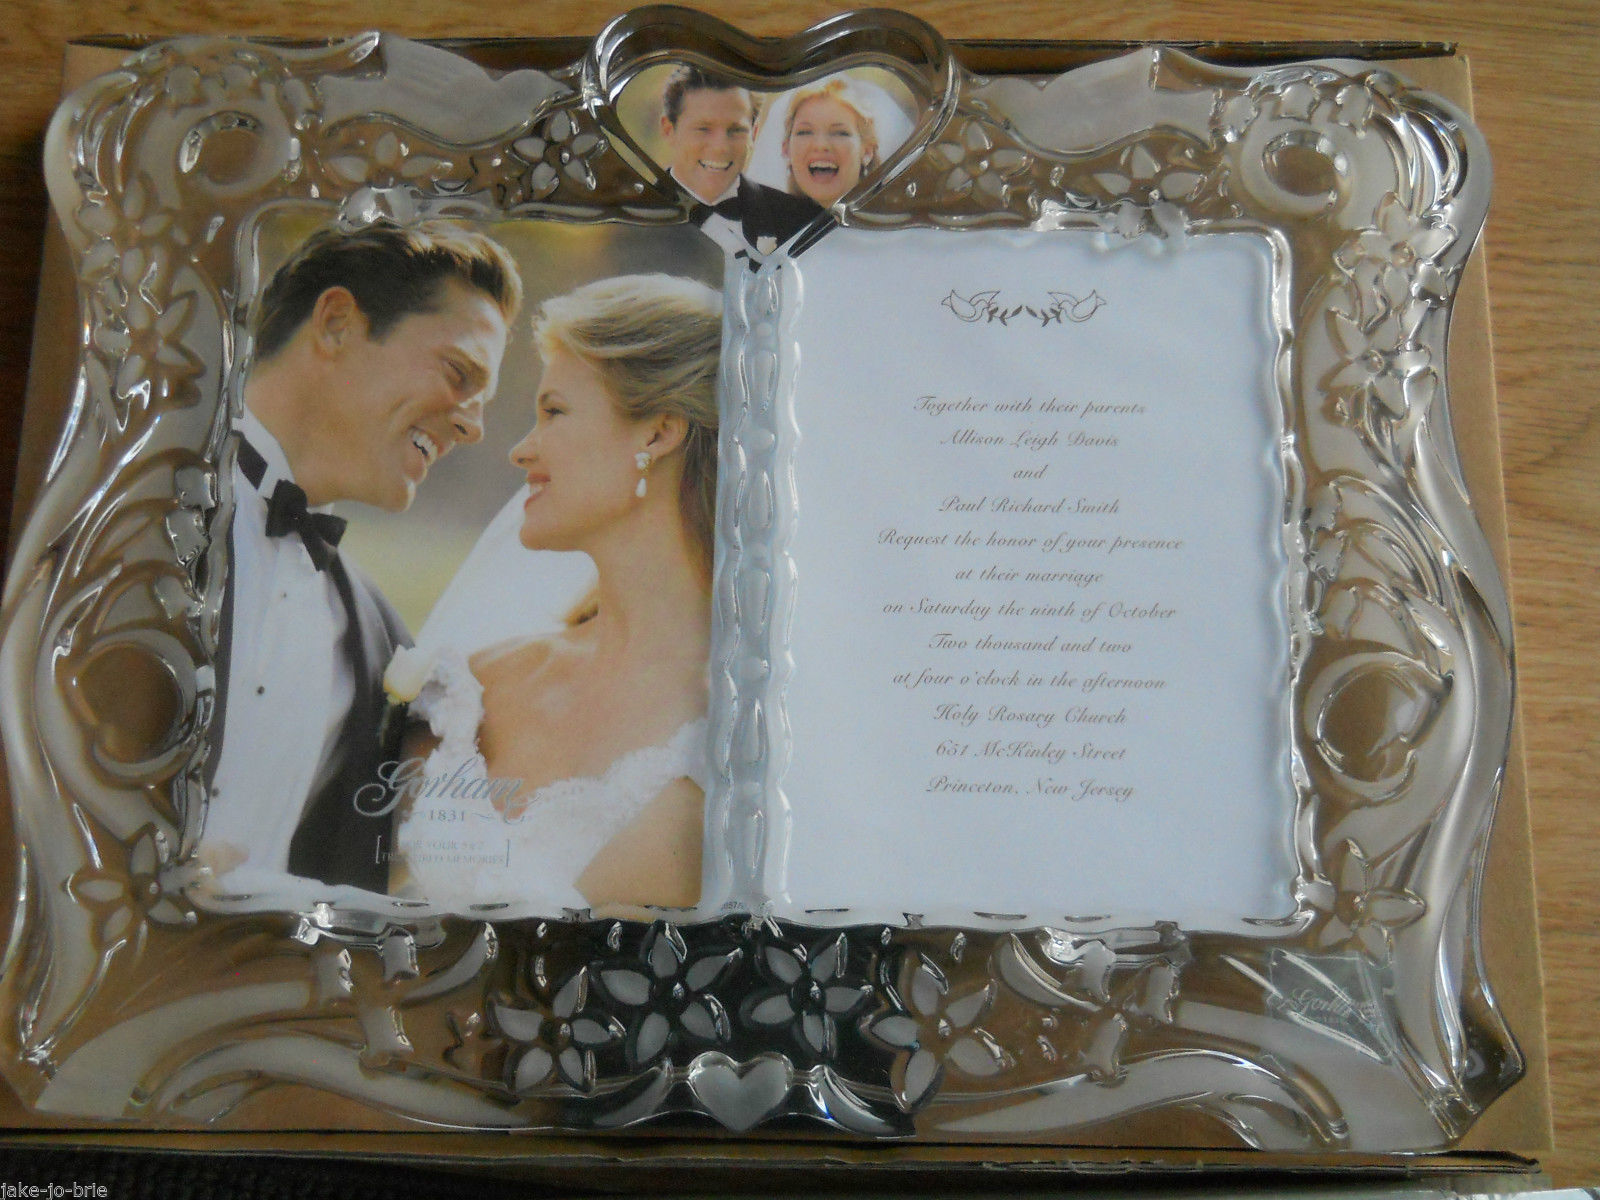 Gorham Invitation Crystal Picture Frame Wedding Sentimental Traditions Glass NEW